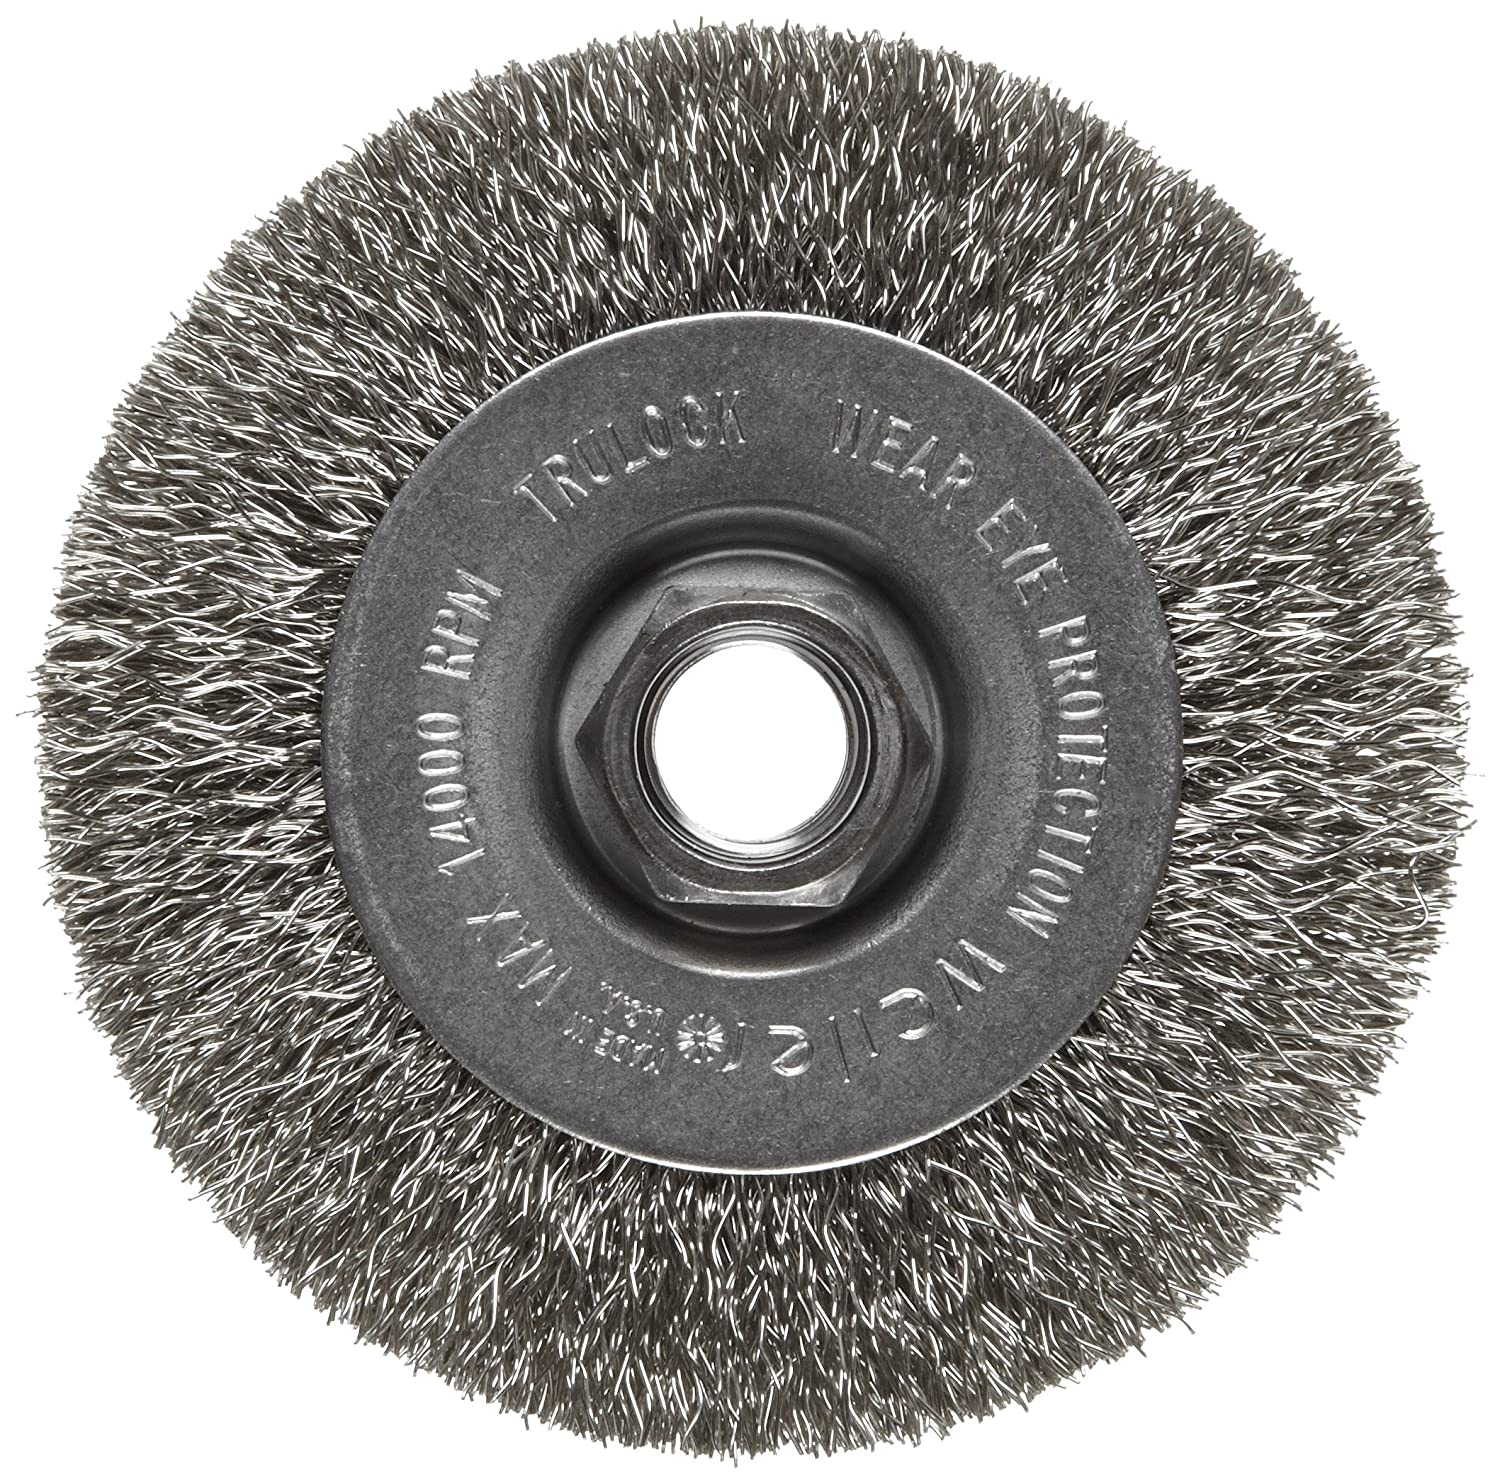 Weiler Trulock Narrow Face Wire Wheel Brush, Threaded Hole, Stainless Steel 302, Crimped Wire, 4' Diameter, 0.014' Wire Diameter, 5/8-11' Arbor, 7/8' Bristle Length, 1/2' Brush Face Width, 14000 rpm